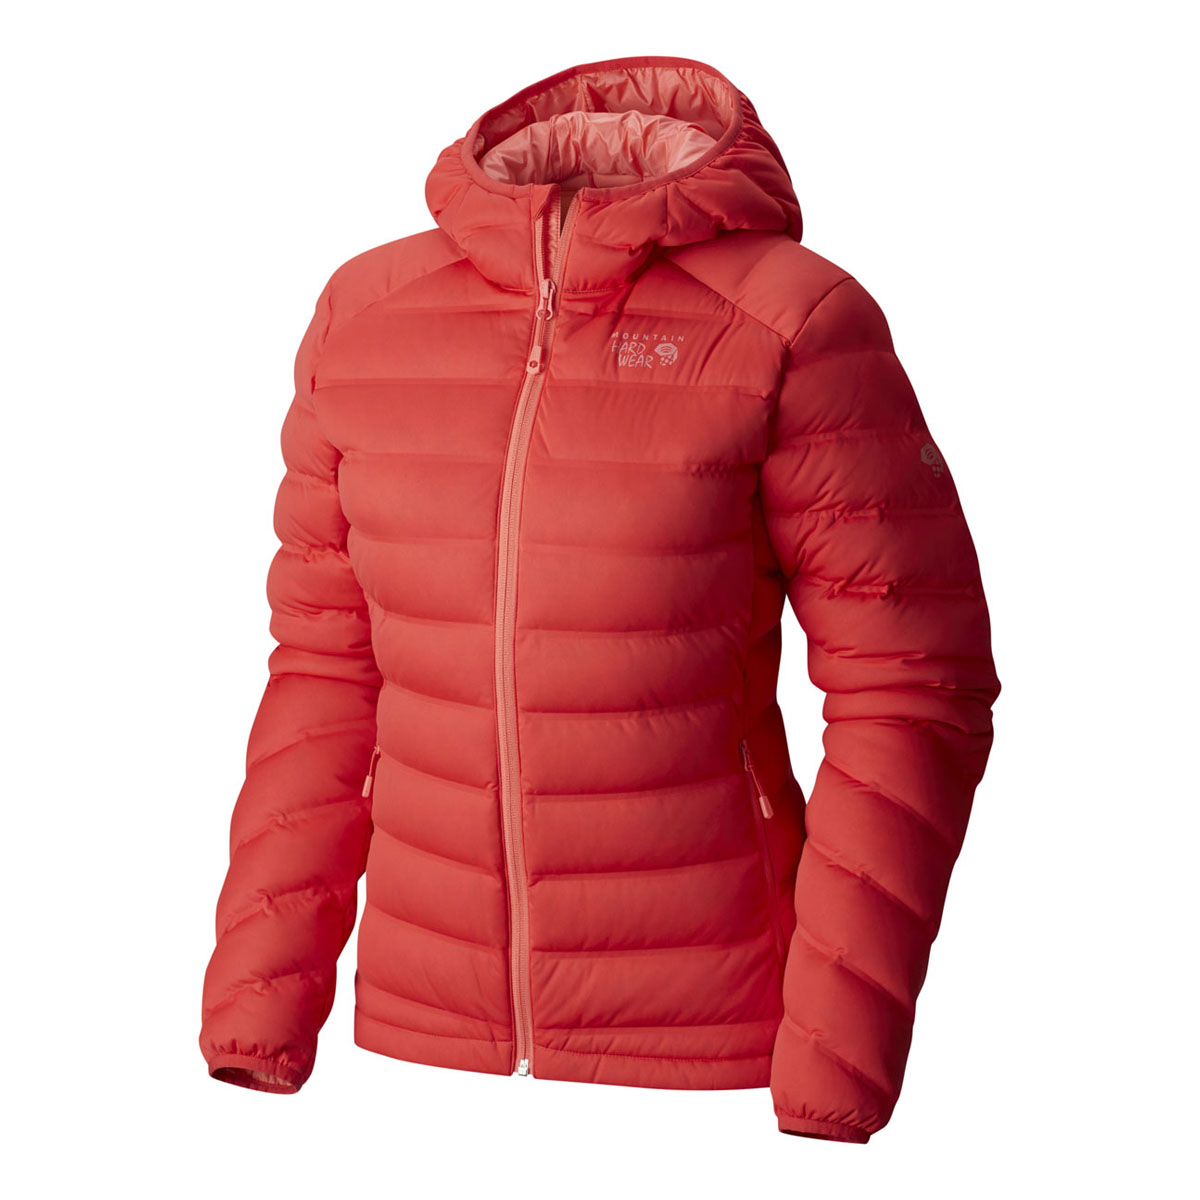 793416c17 StretchDown Hooded Jacket Womens